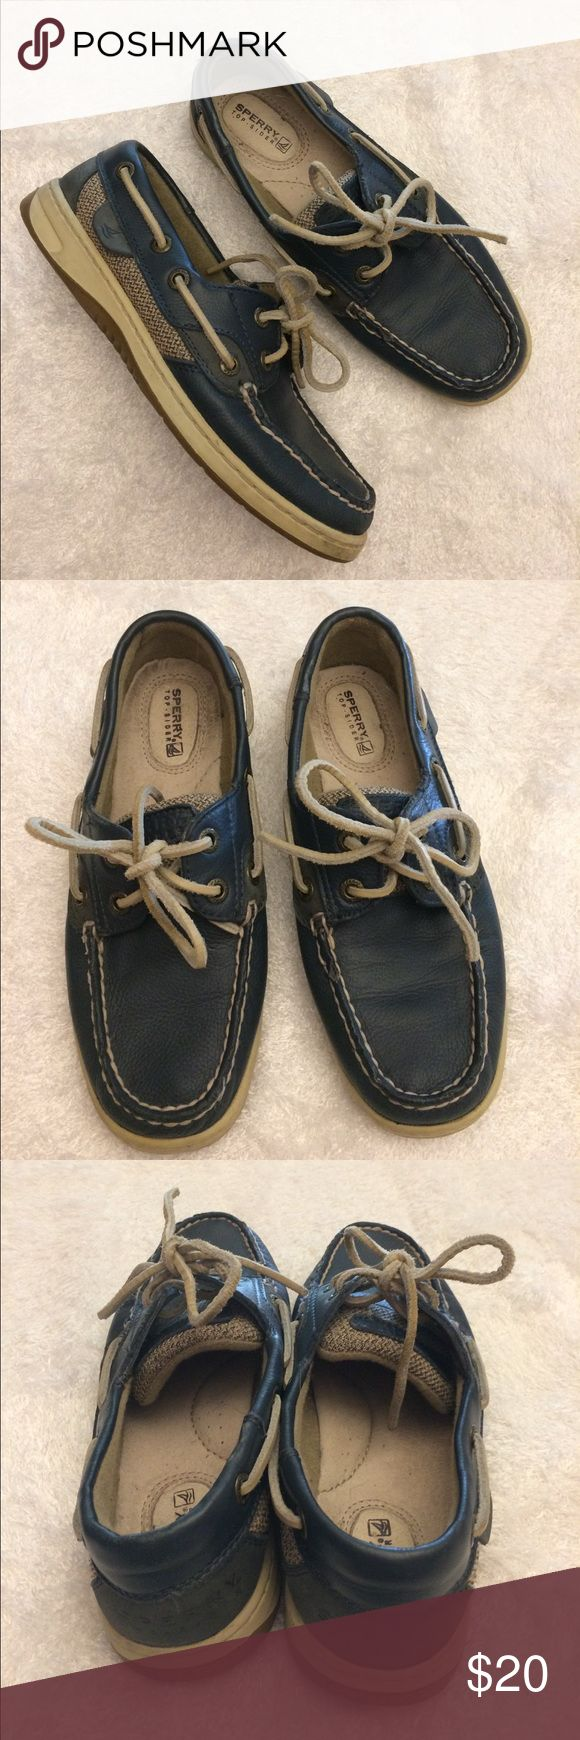 Navy Sperry boat shoes size 5 Excellent condition navy Sperry boat shoes! Lots of life left in these comfortable, versatile shoes. Size 5 Sperry Shoes Flats & Loafers